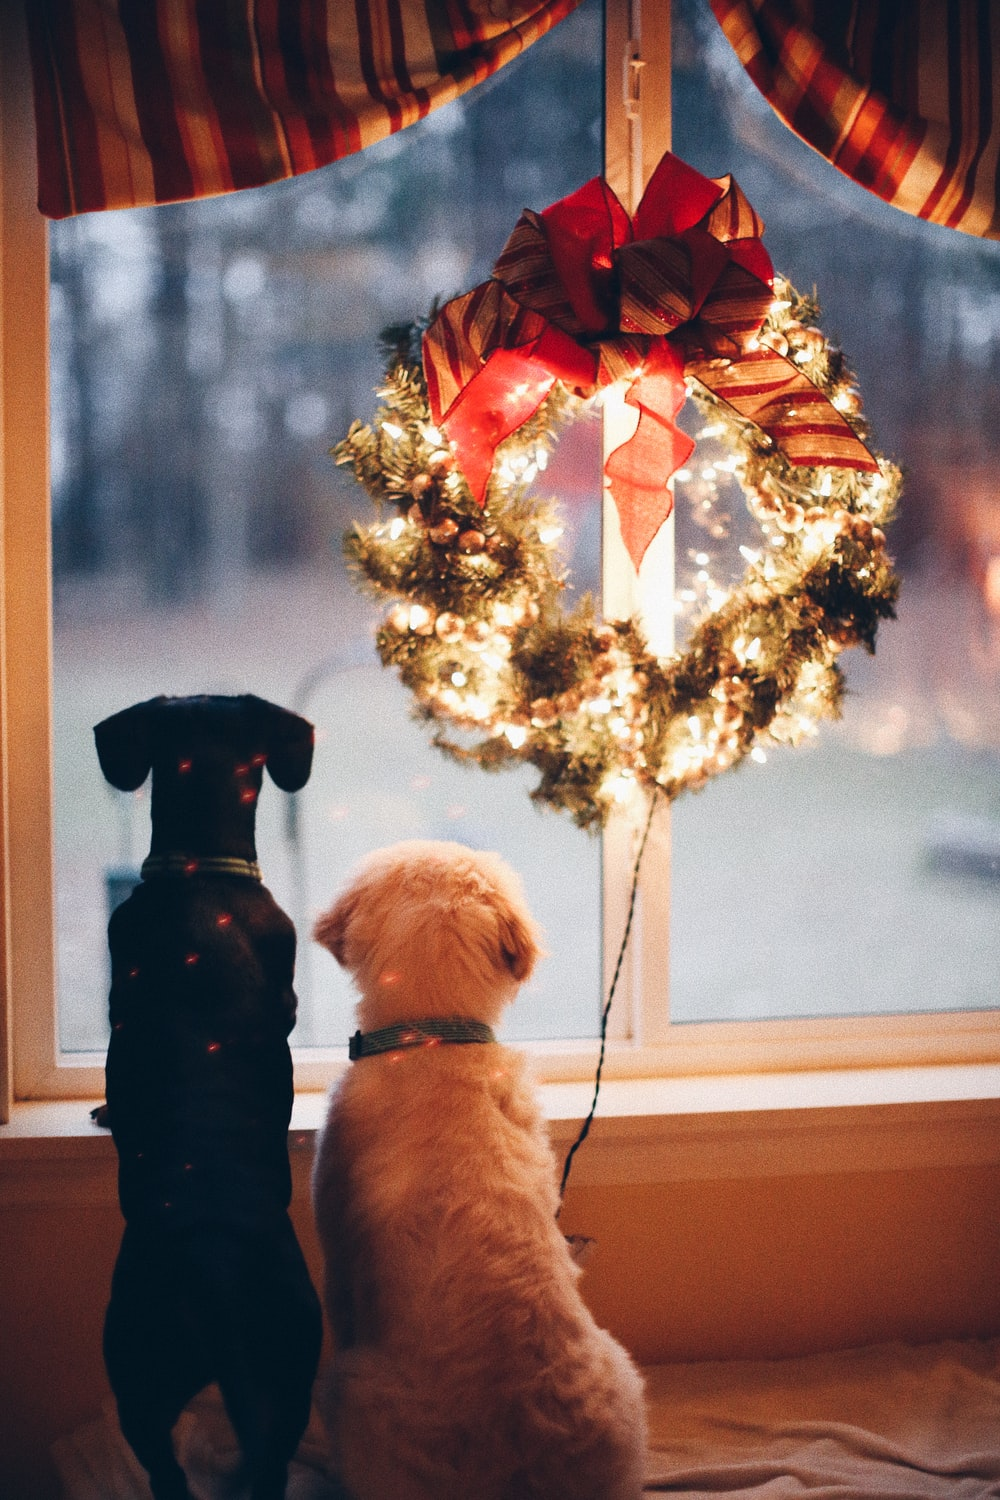 two black and white dogs near lighted wreath